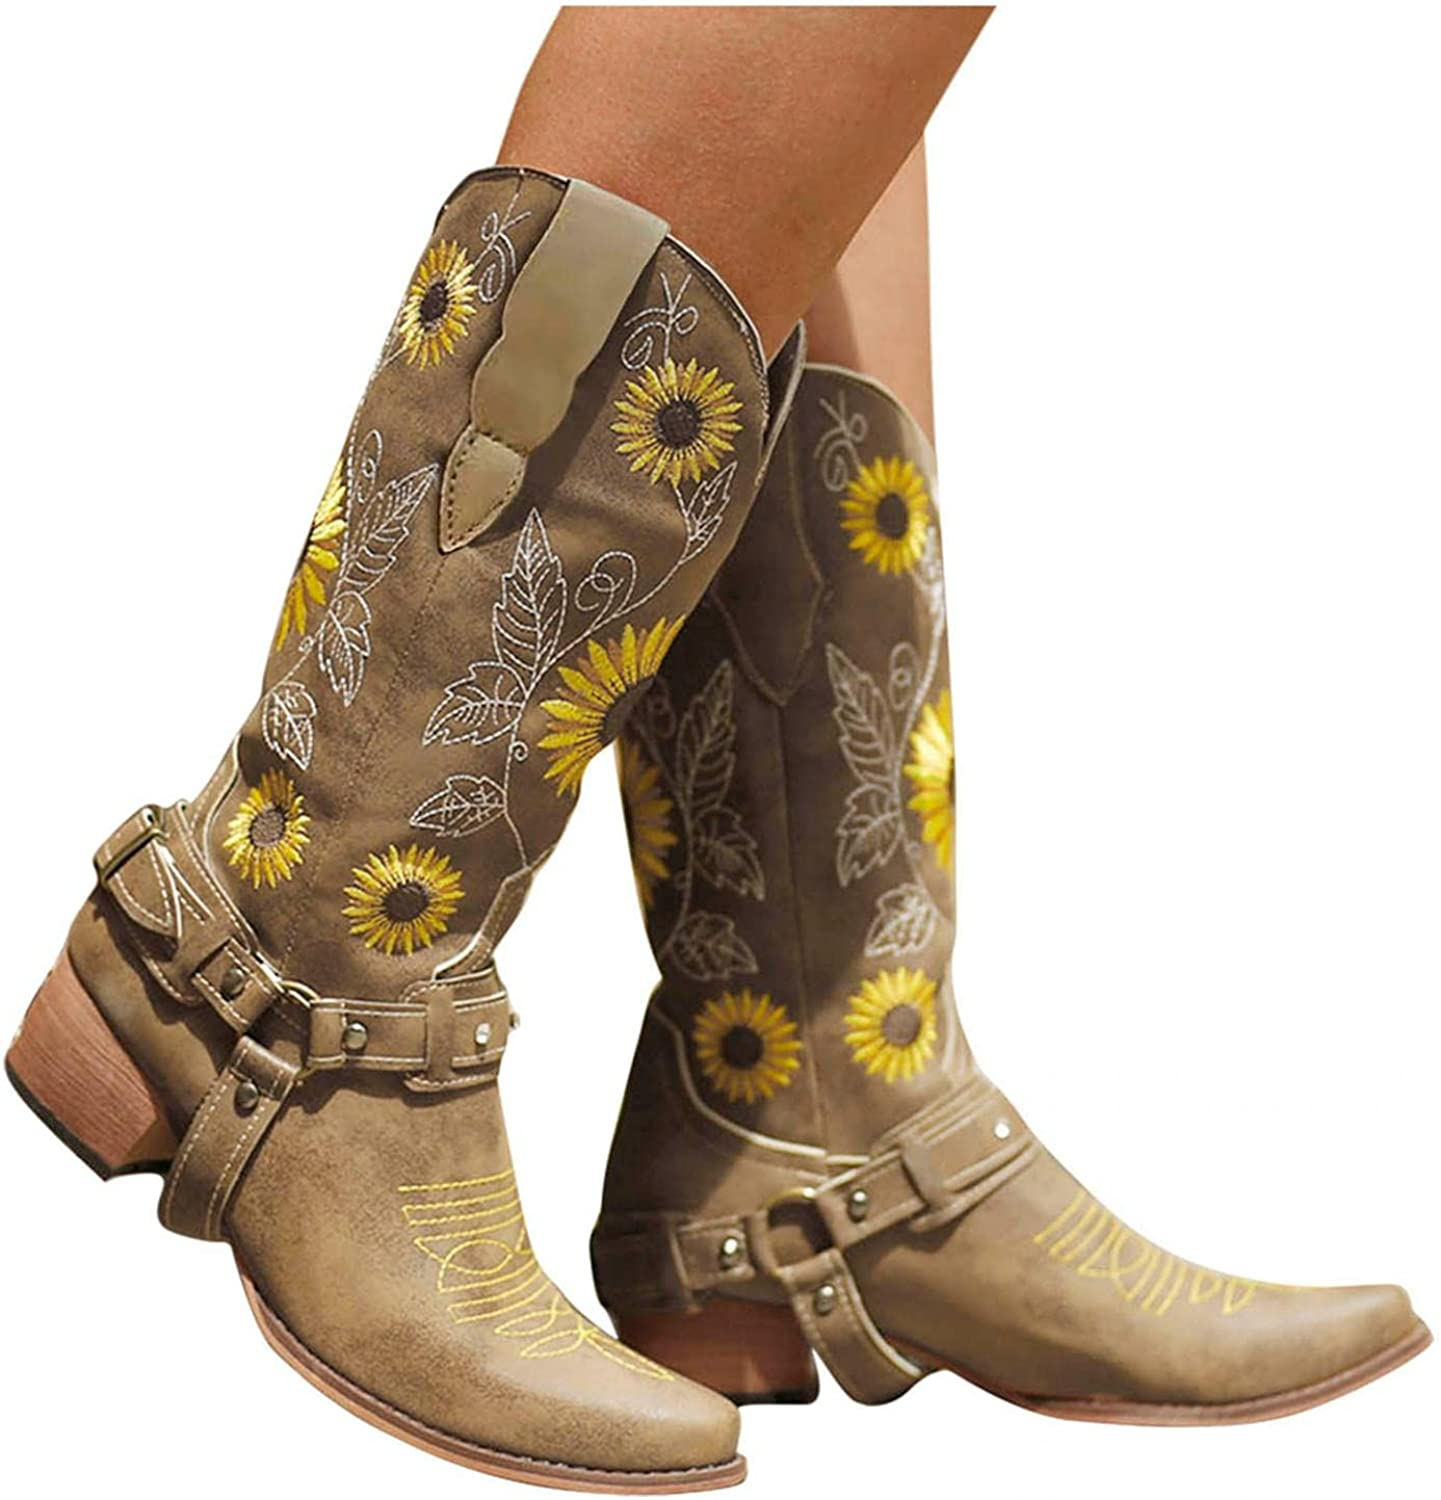 Cowgirl Boots for Women Sales results No. 1 Western Emb Boot Max 51% OFF Sunflowers Cowboy